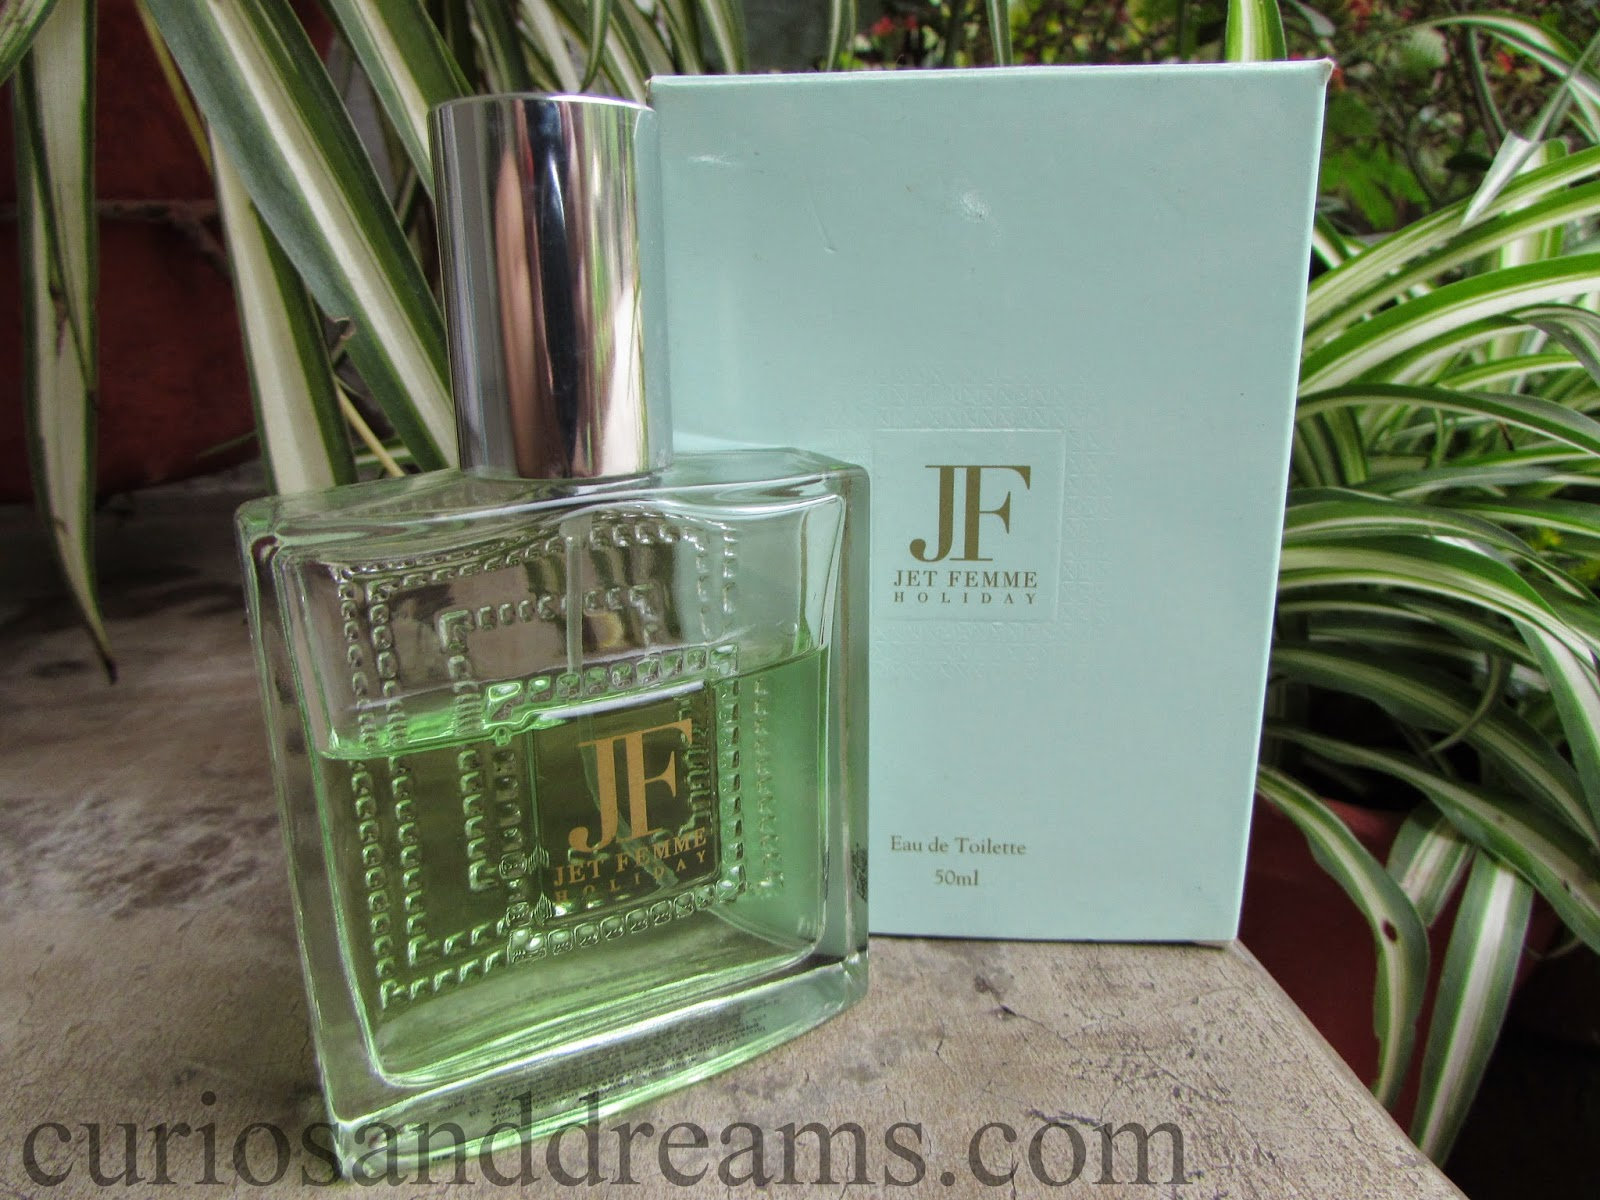 Avon Jet Femme Holiday Eau De Toilette review, Avon Jet Femme Holiday review, Avon Jet Femme Holiday edt review